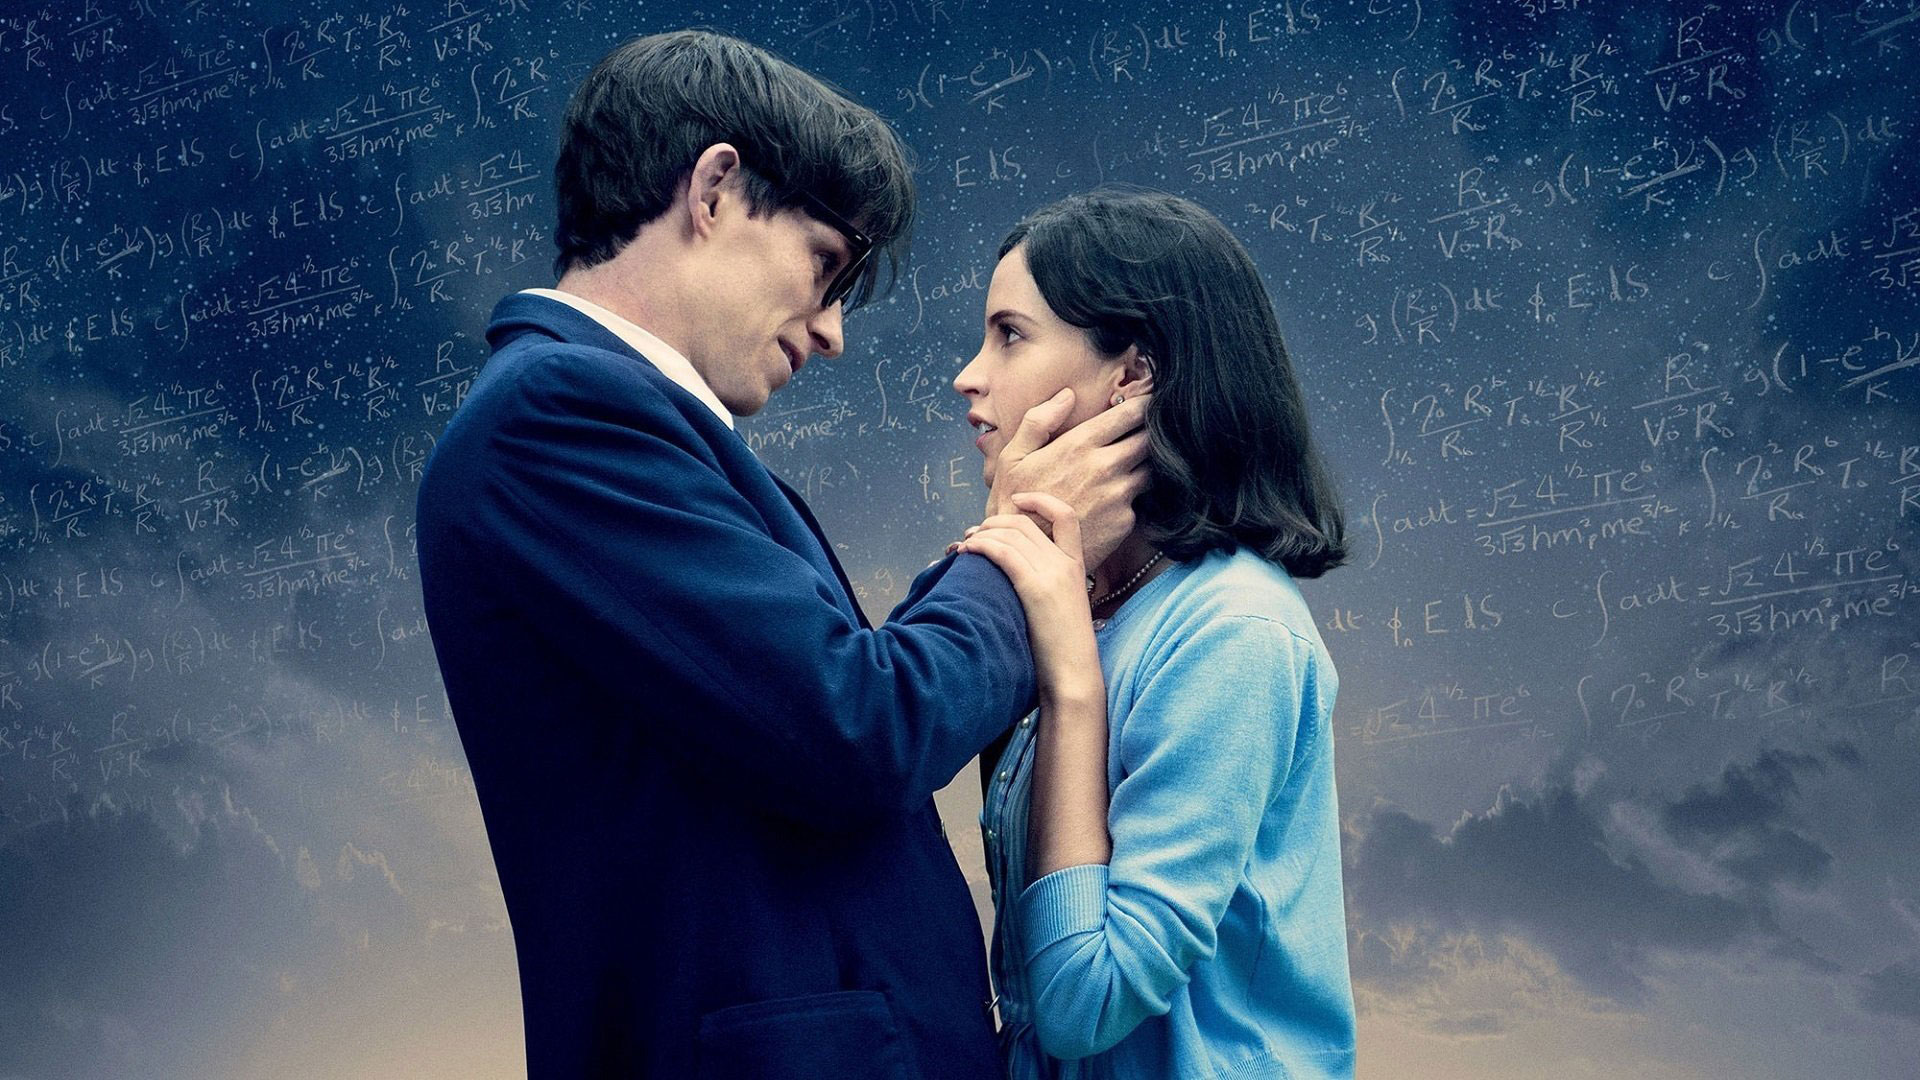 Cool Wallpaper Movie The Theory Everything - 825426  Gallery_45575.jpg